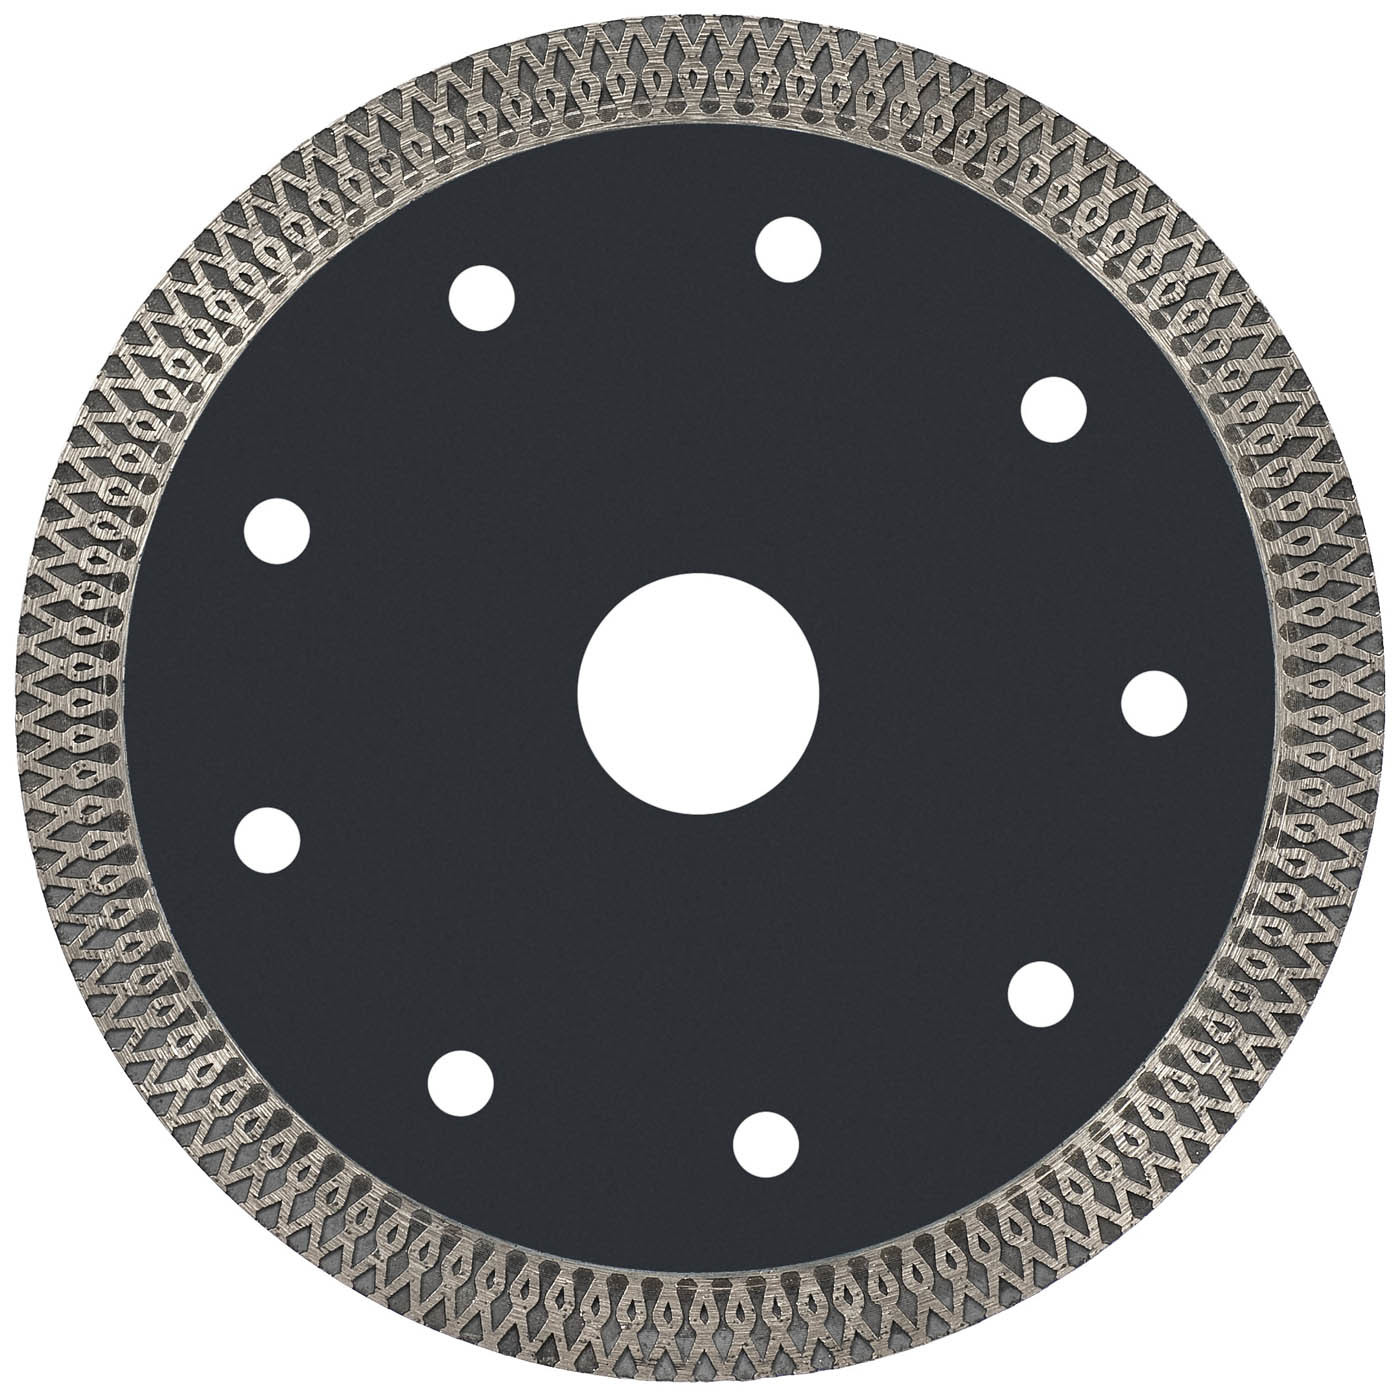 Super Thin Turbo Sintered Circular Diamond Saw Blades Hot Press For Smooth Cutting